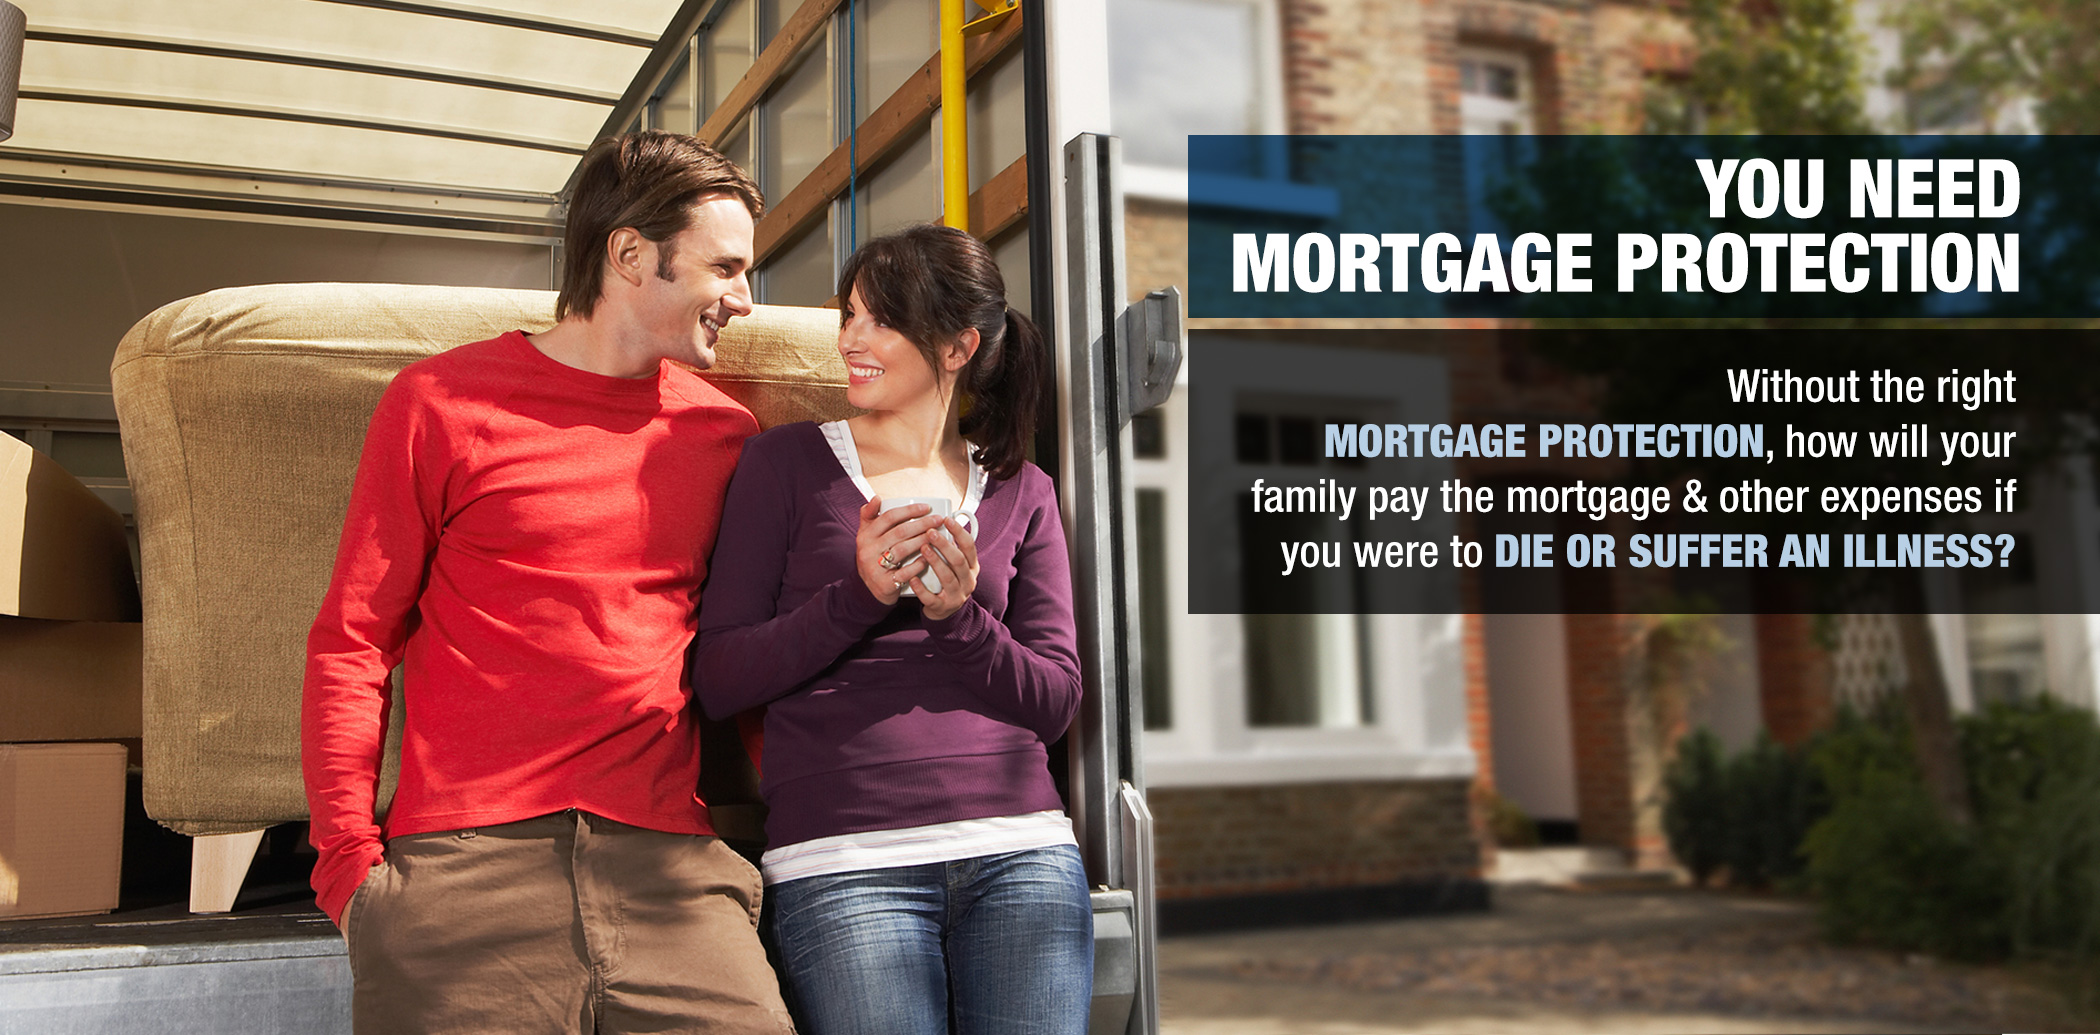 Ransome Financial mortgage insurance